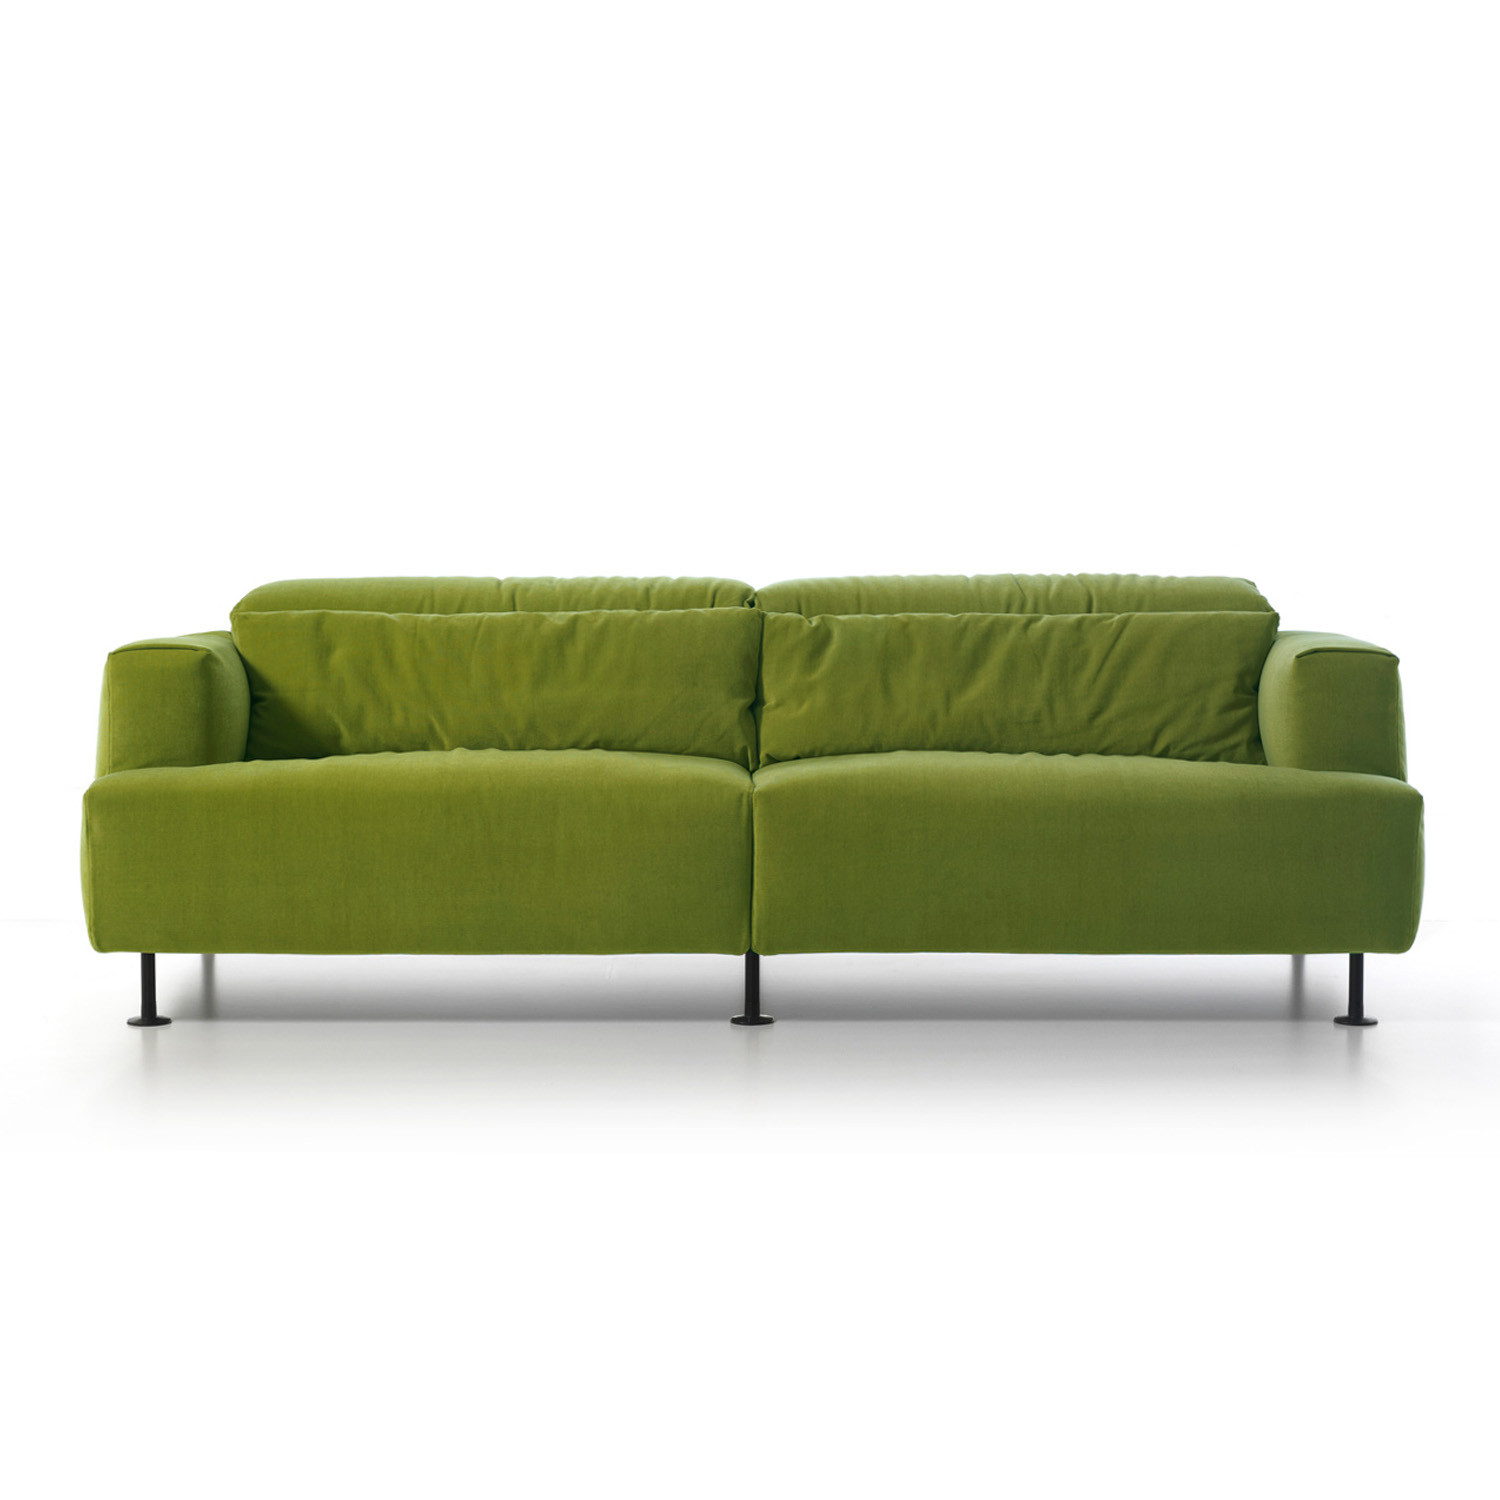 190 Aire Sofa Front without Headrest